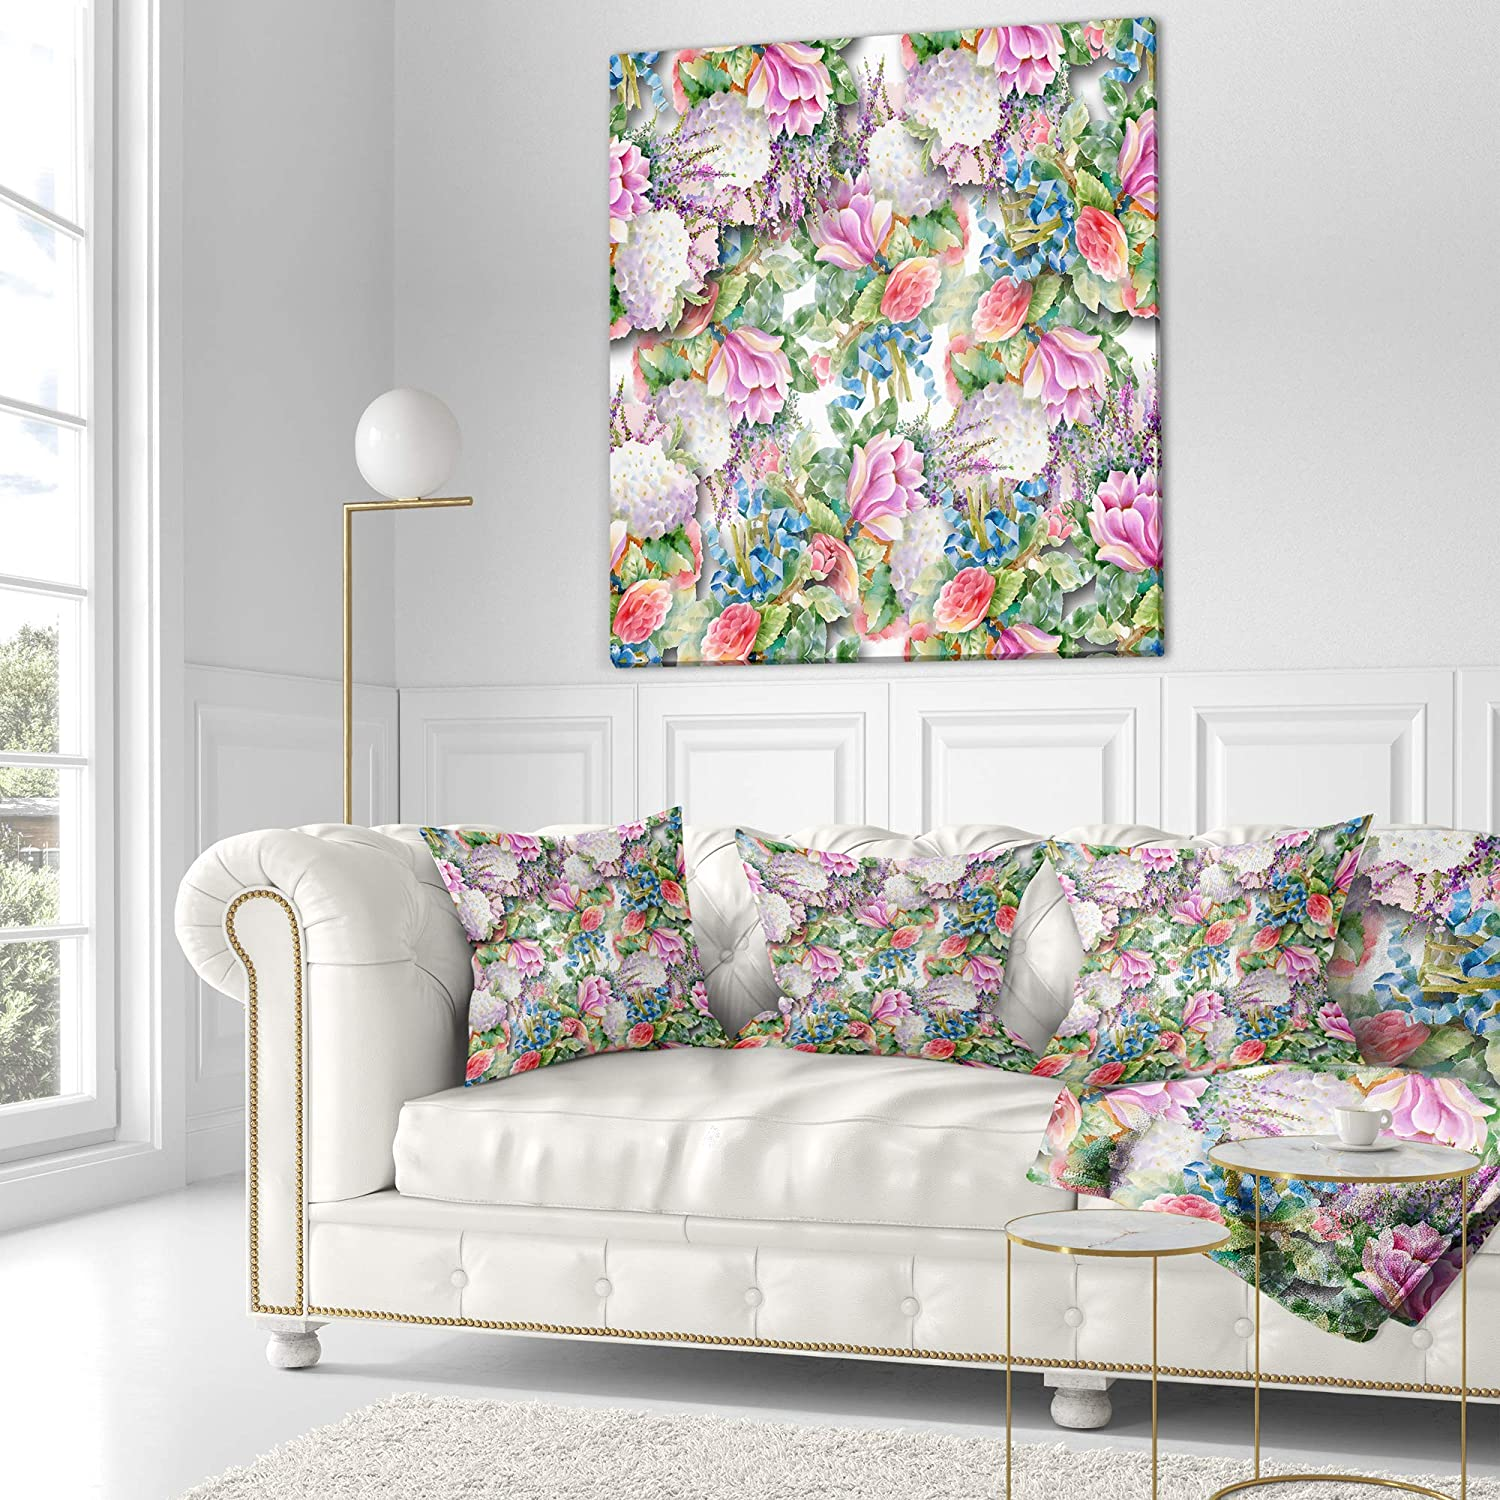 Designart CU13094-26-26 Pink Flower Pattern on White Floral Cushion Cover for Living Room Insert Printed On Both Side x 26 in in Sofa Throw Pillow 26 in